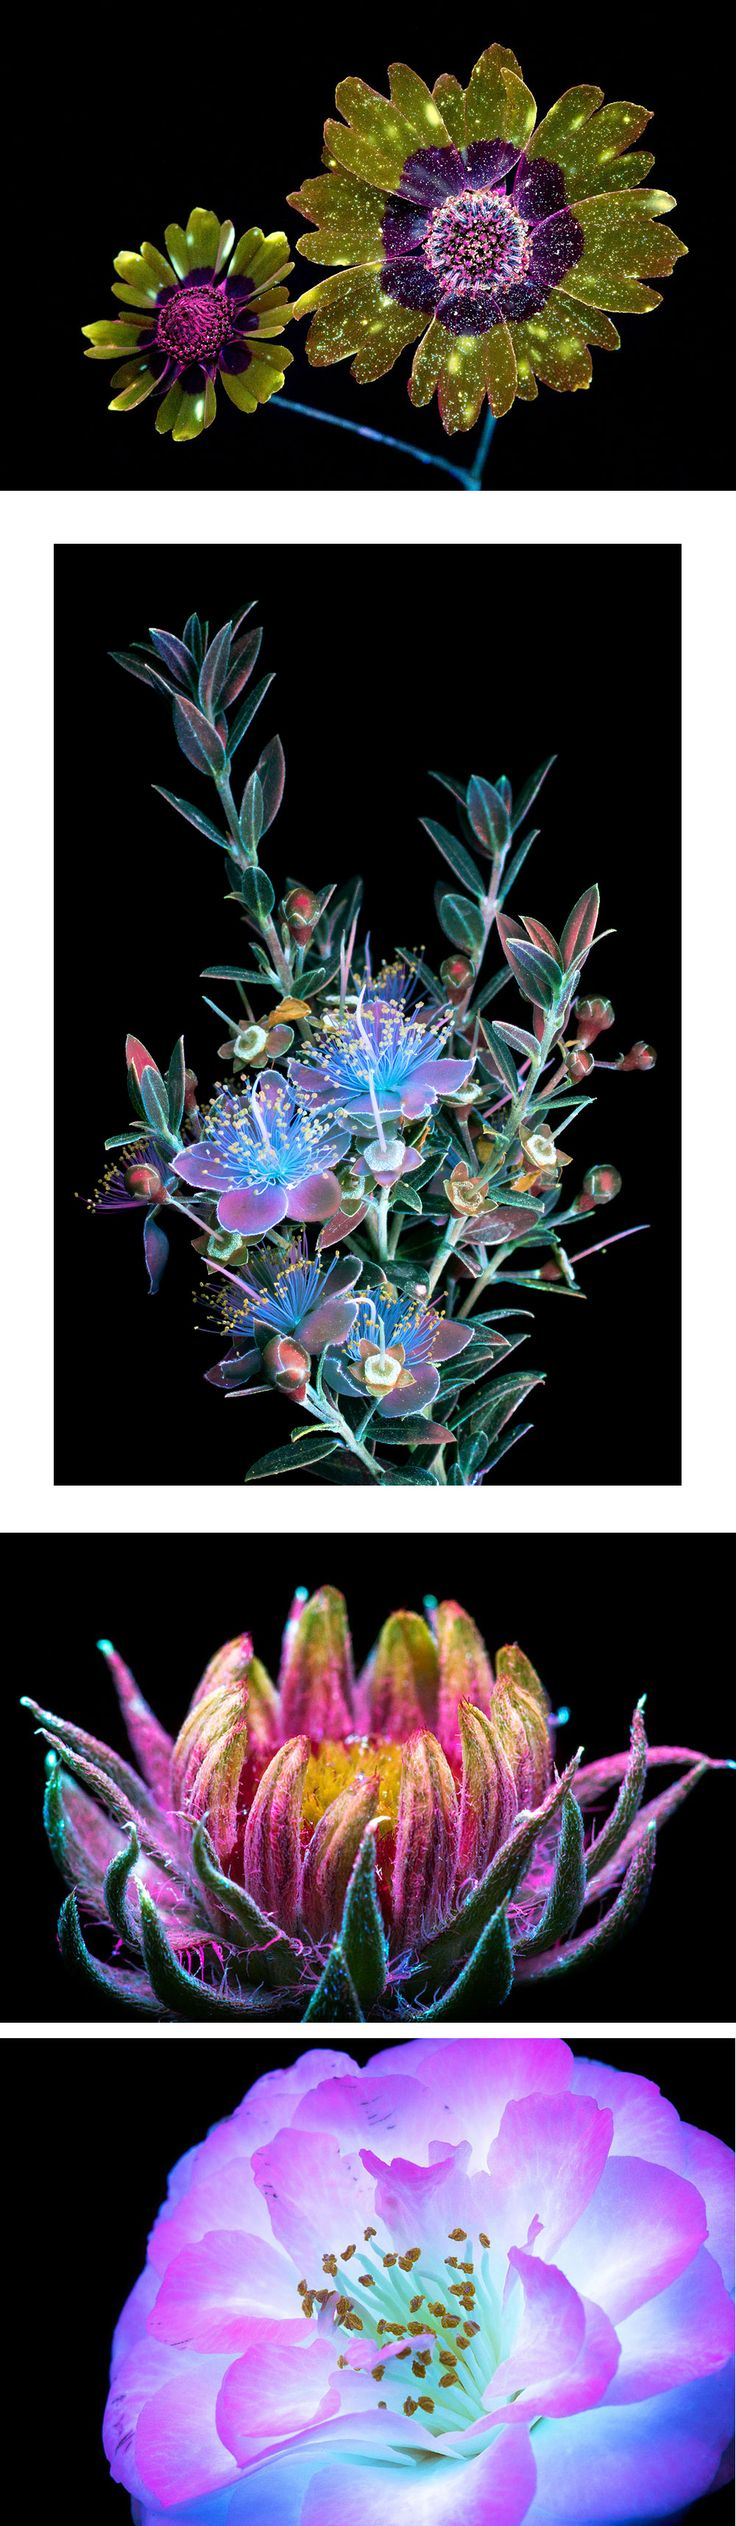 Dazzling Images of Glowing Flowers Photographed With Ultraviolet-Induced Visible Fluorescence